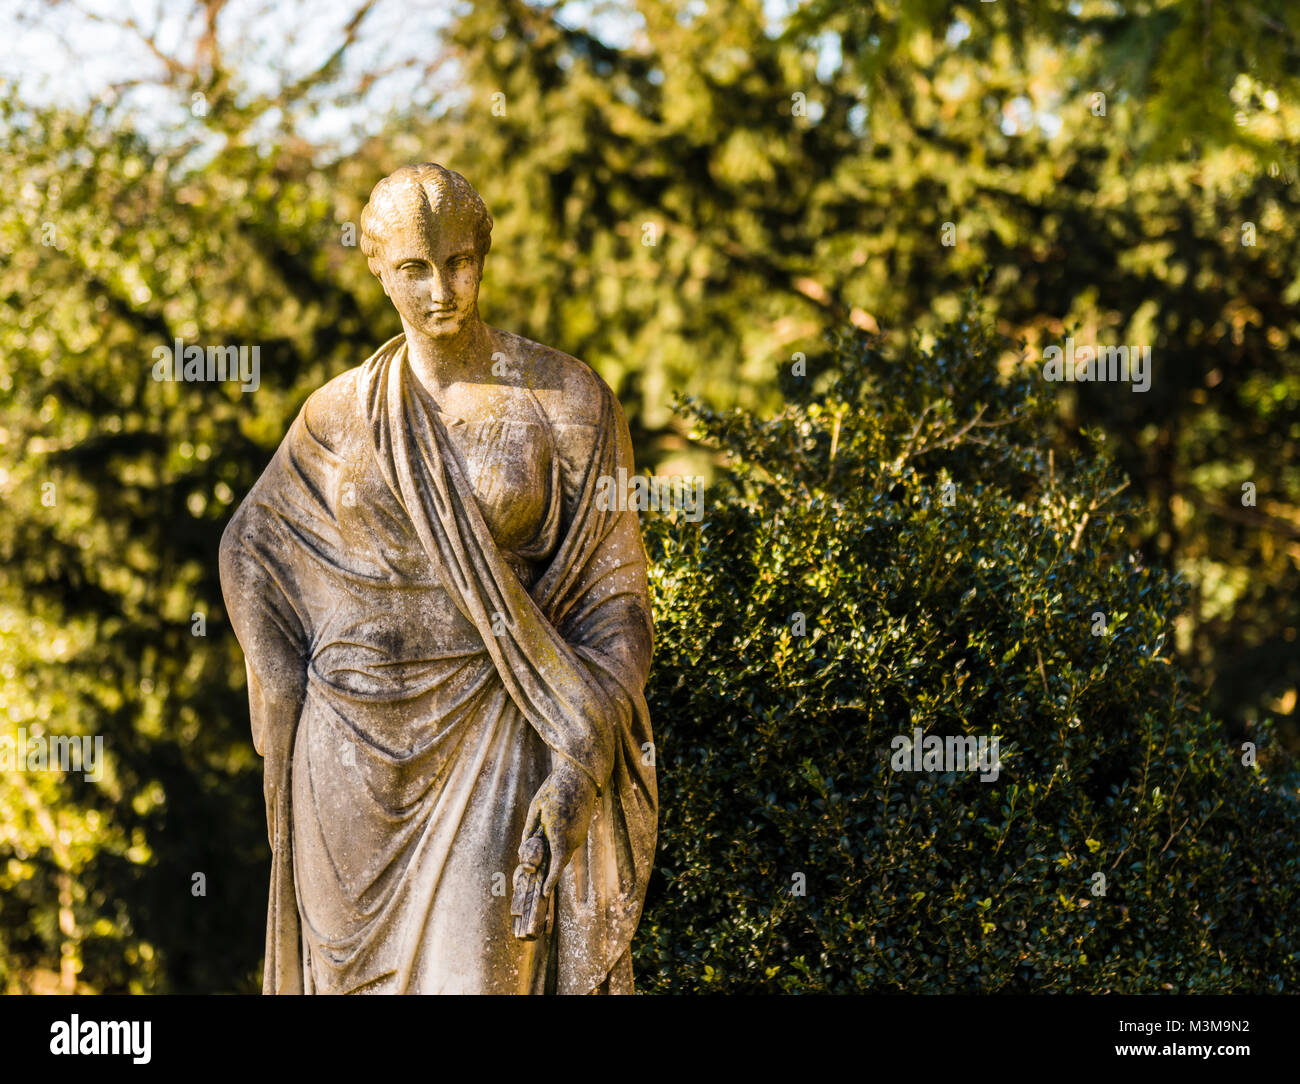 Stone statue of female figure at Hughenden, Buckinghamshire, UK - Stock Image